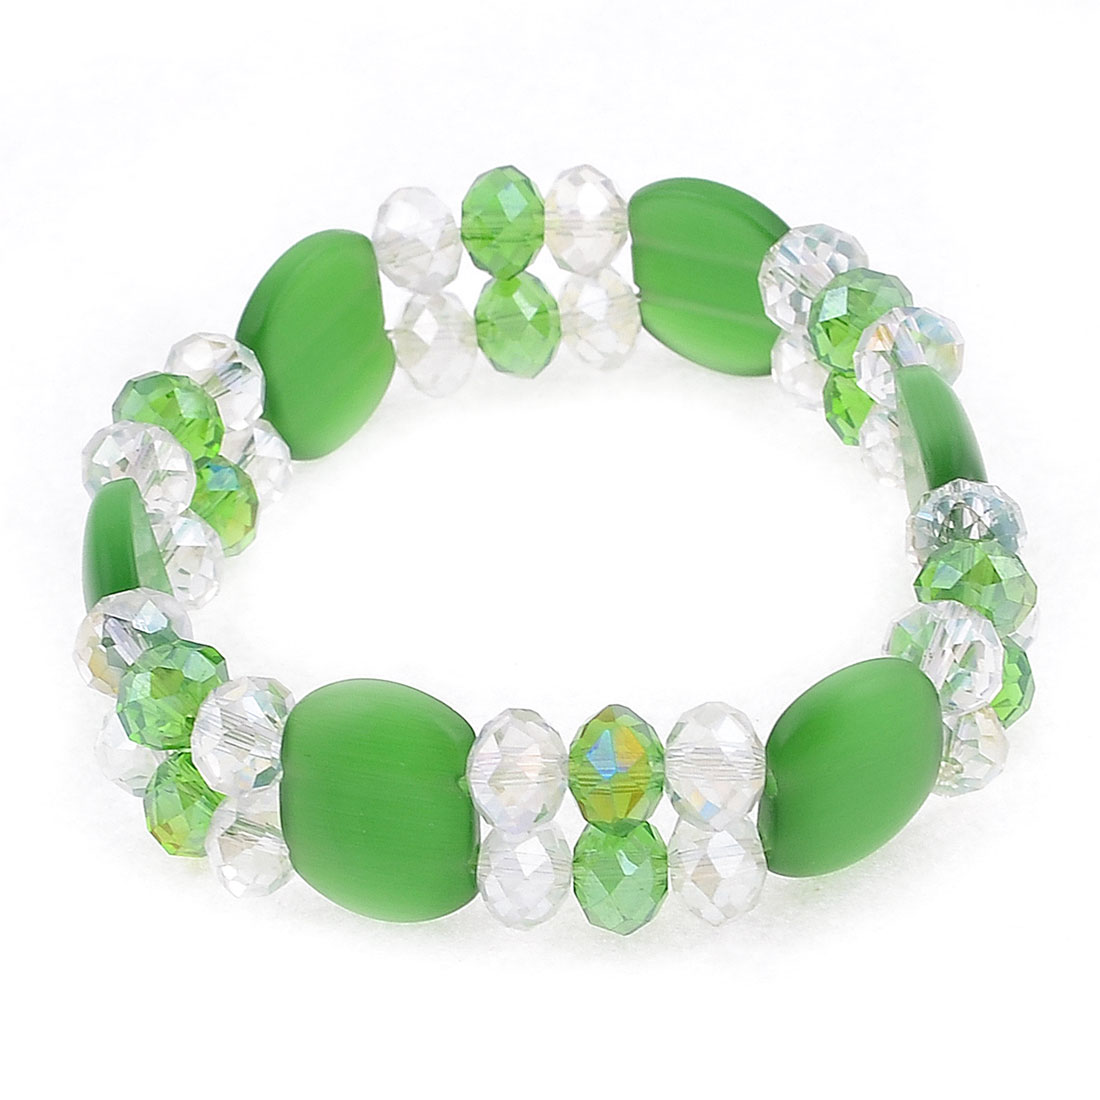 "Green Clear Stretchy Layered Plastic Rectangle Beads Crystal Bracelet 0.6"" Width"